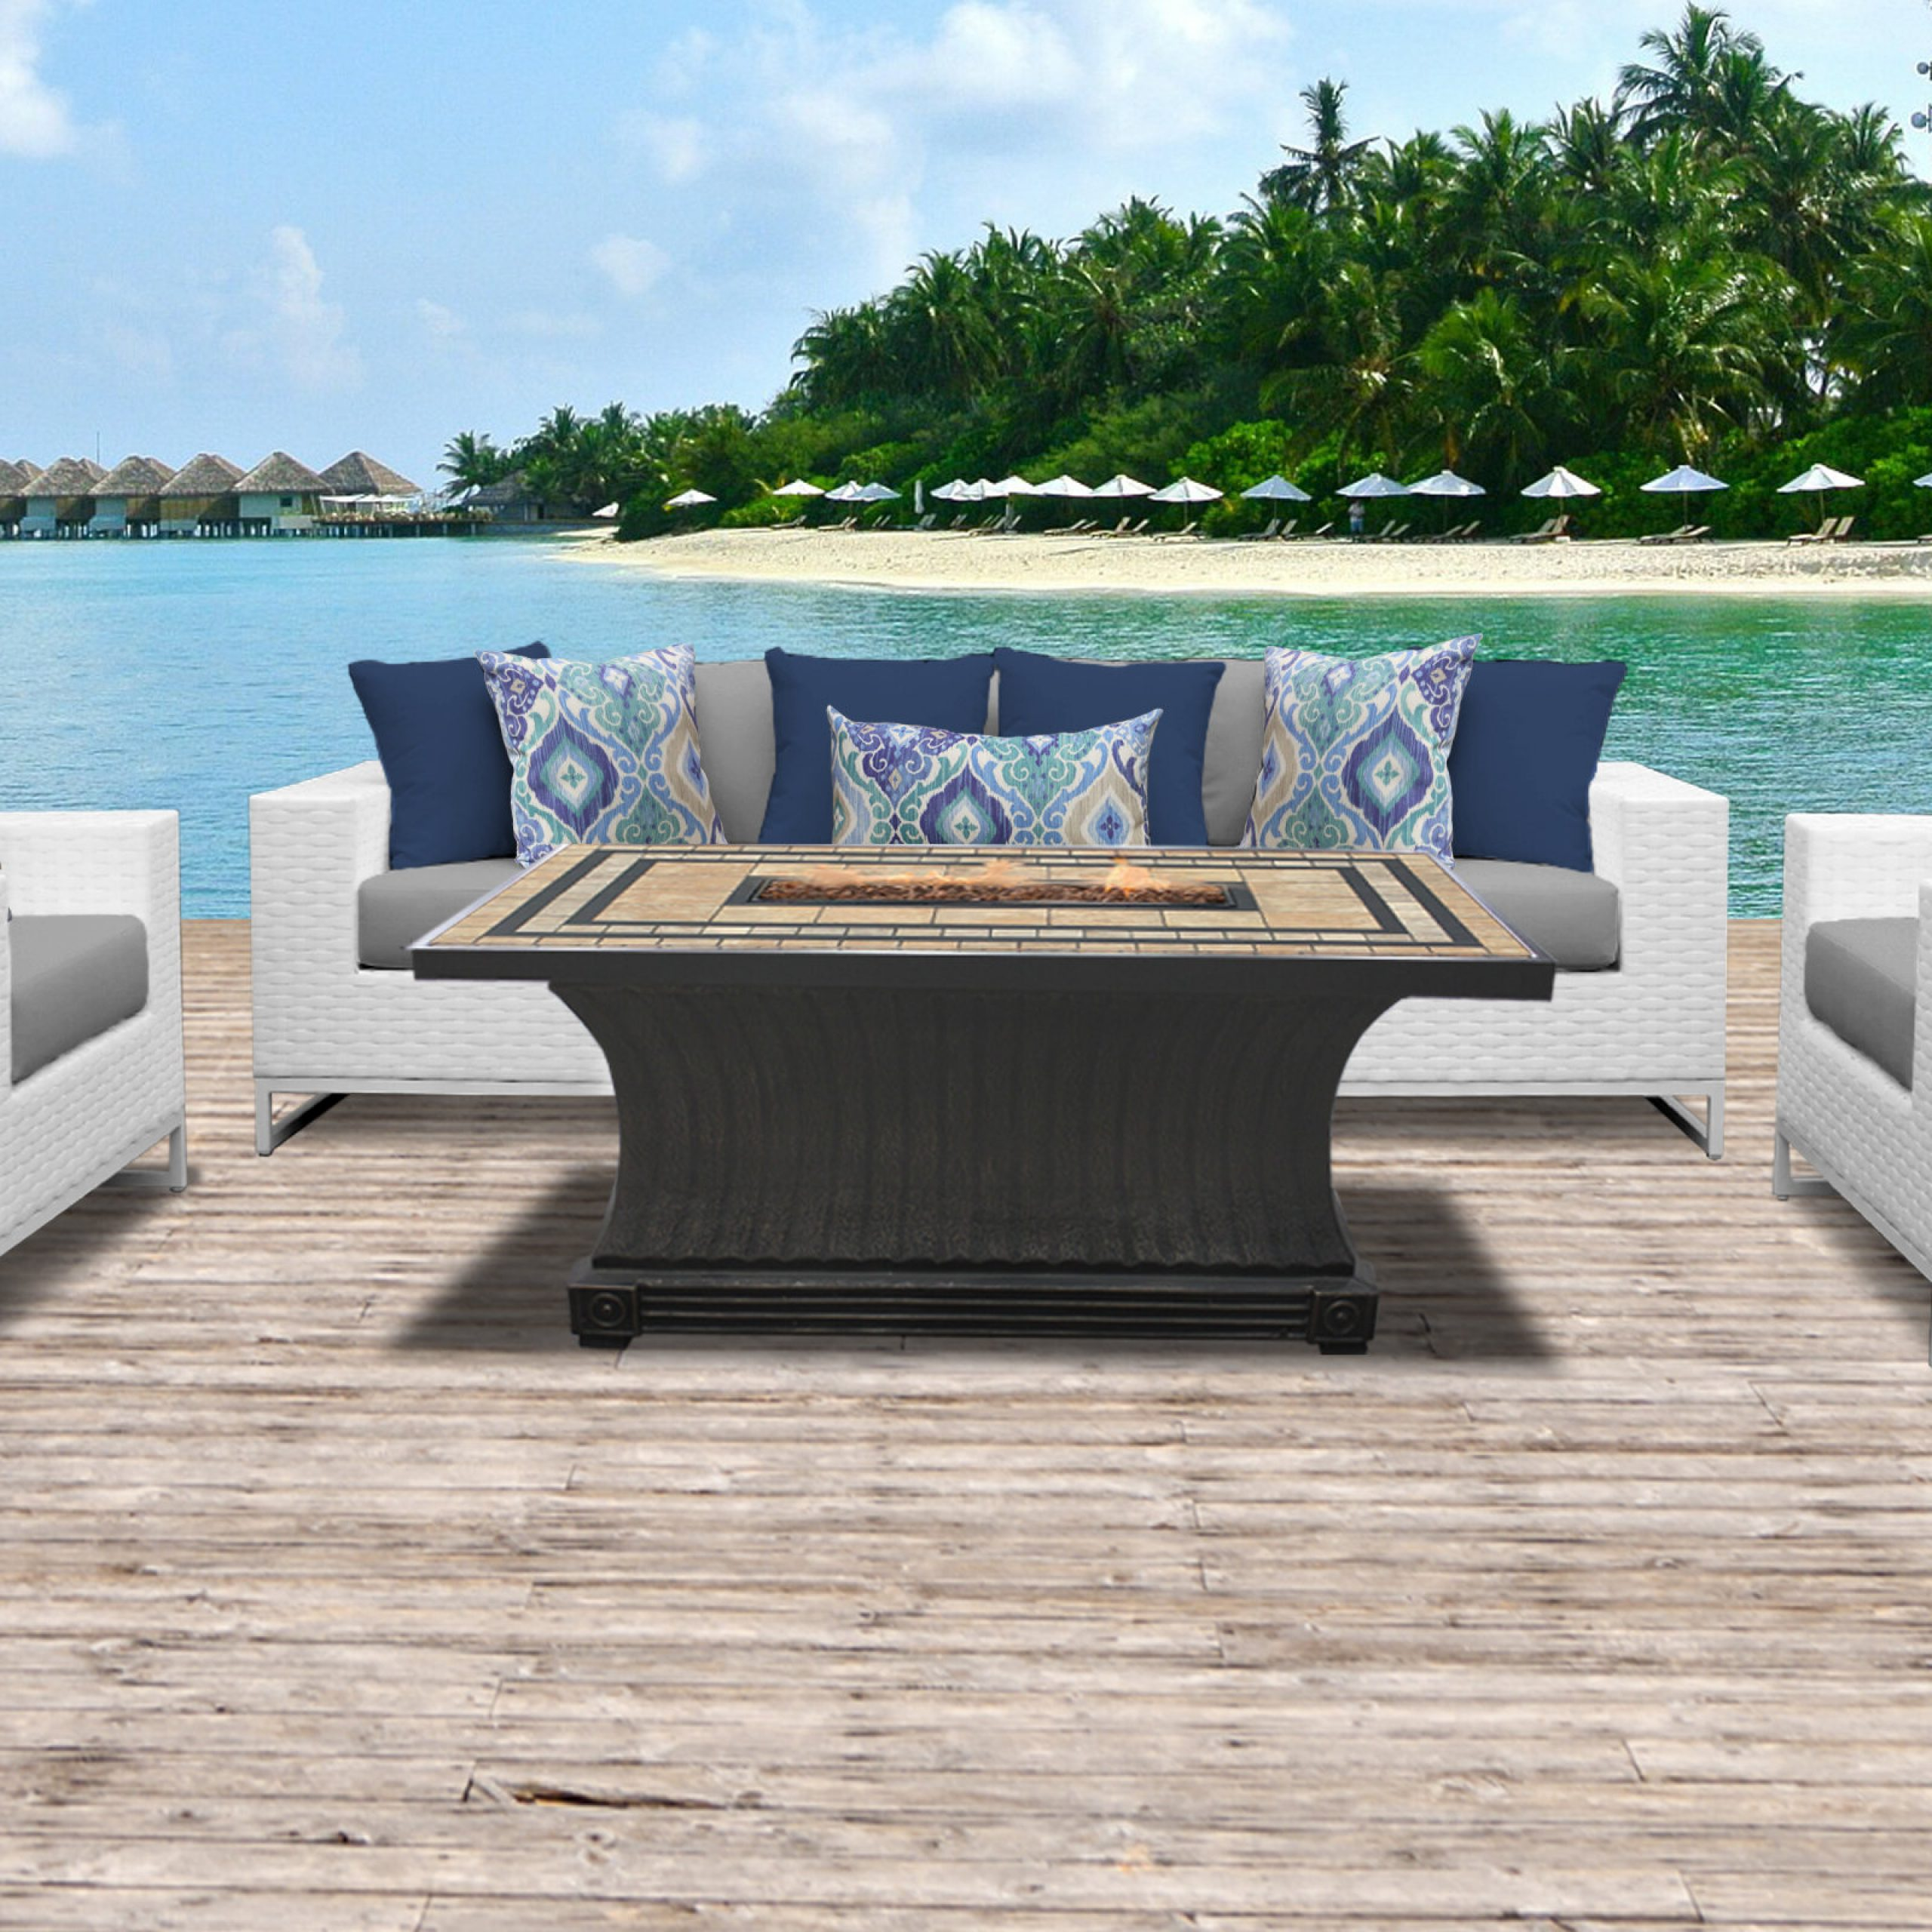 Menifee 6 Piece Sofa Seating Group With Cushions Intended For Recent Menifee Patio Sofas With Cushions (View 7 of 25)